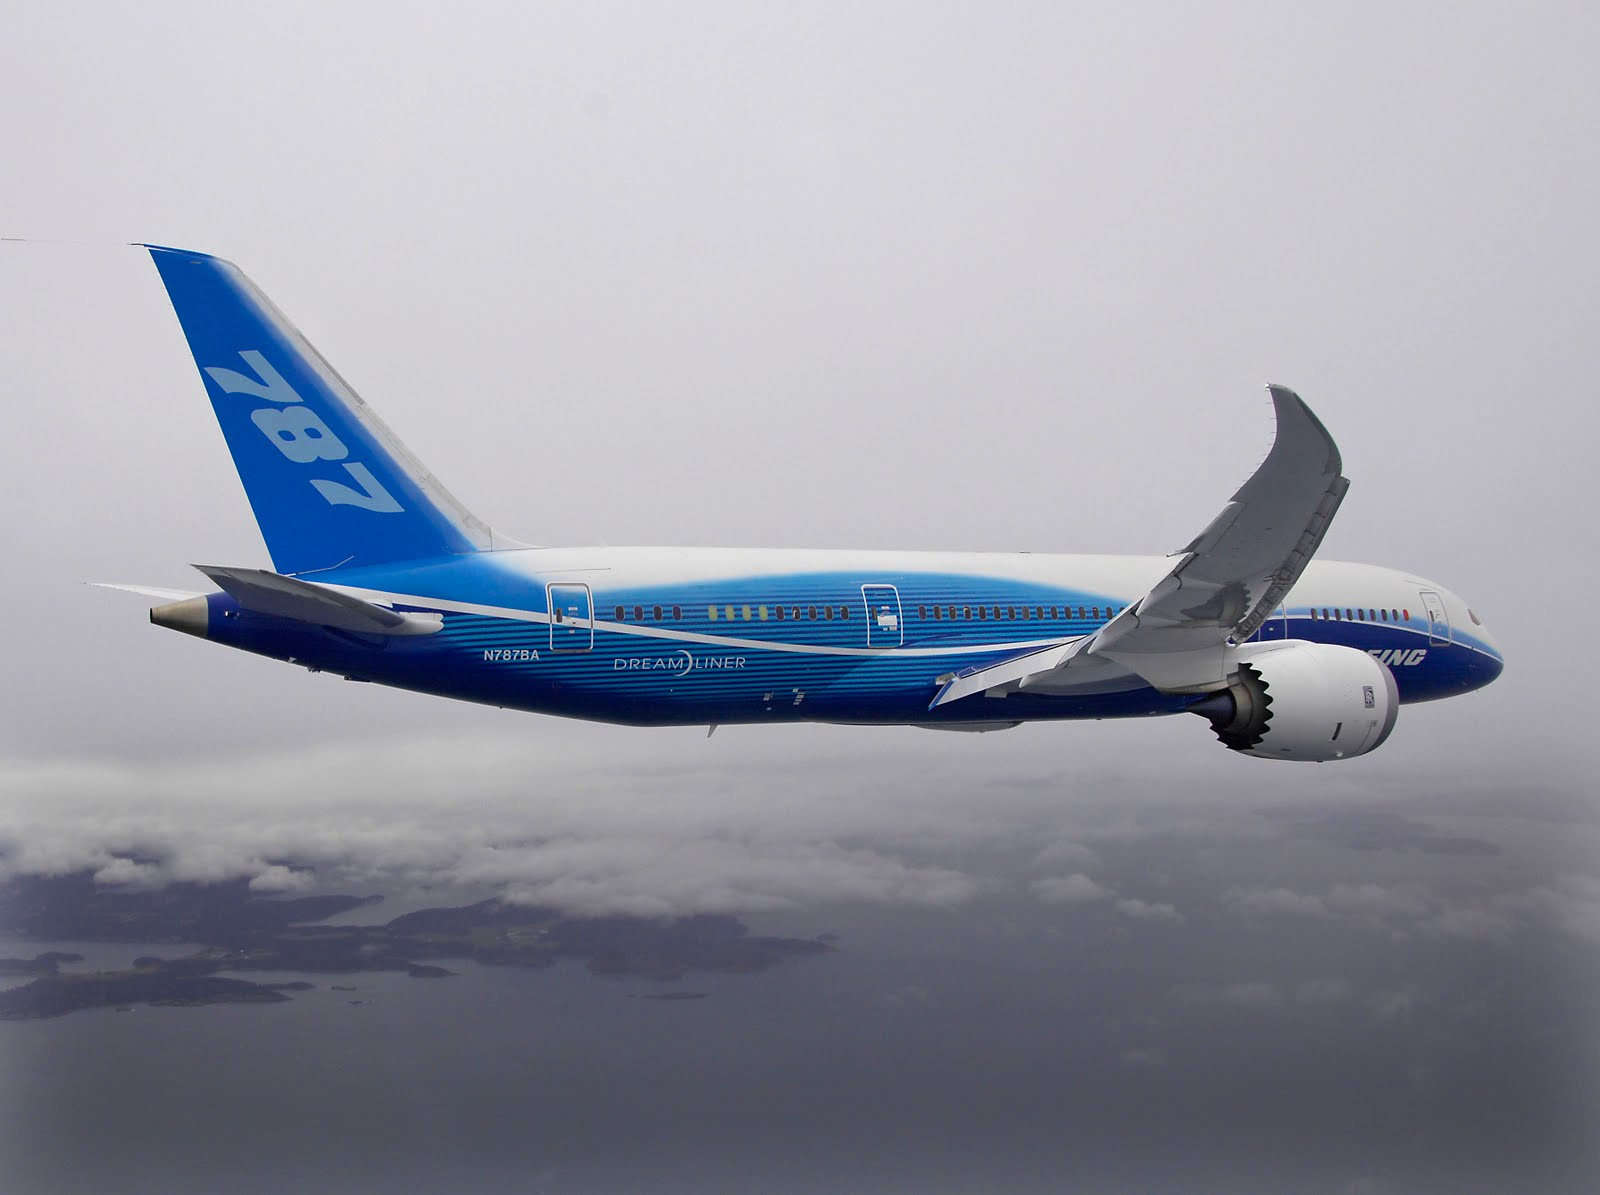 the dream liner analysis The boeing 787 dreamliner is an american long-haul, mid-size widebody, twin- engine jet  an analysis by consultant airinsight concluded that united airlines'  787s achieved an operating cost per seat that was 6% lower than the airbus  a330.